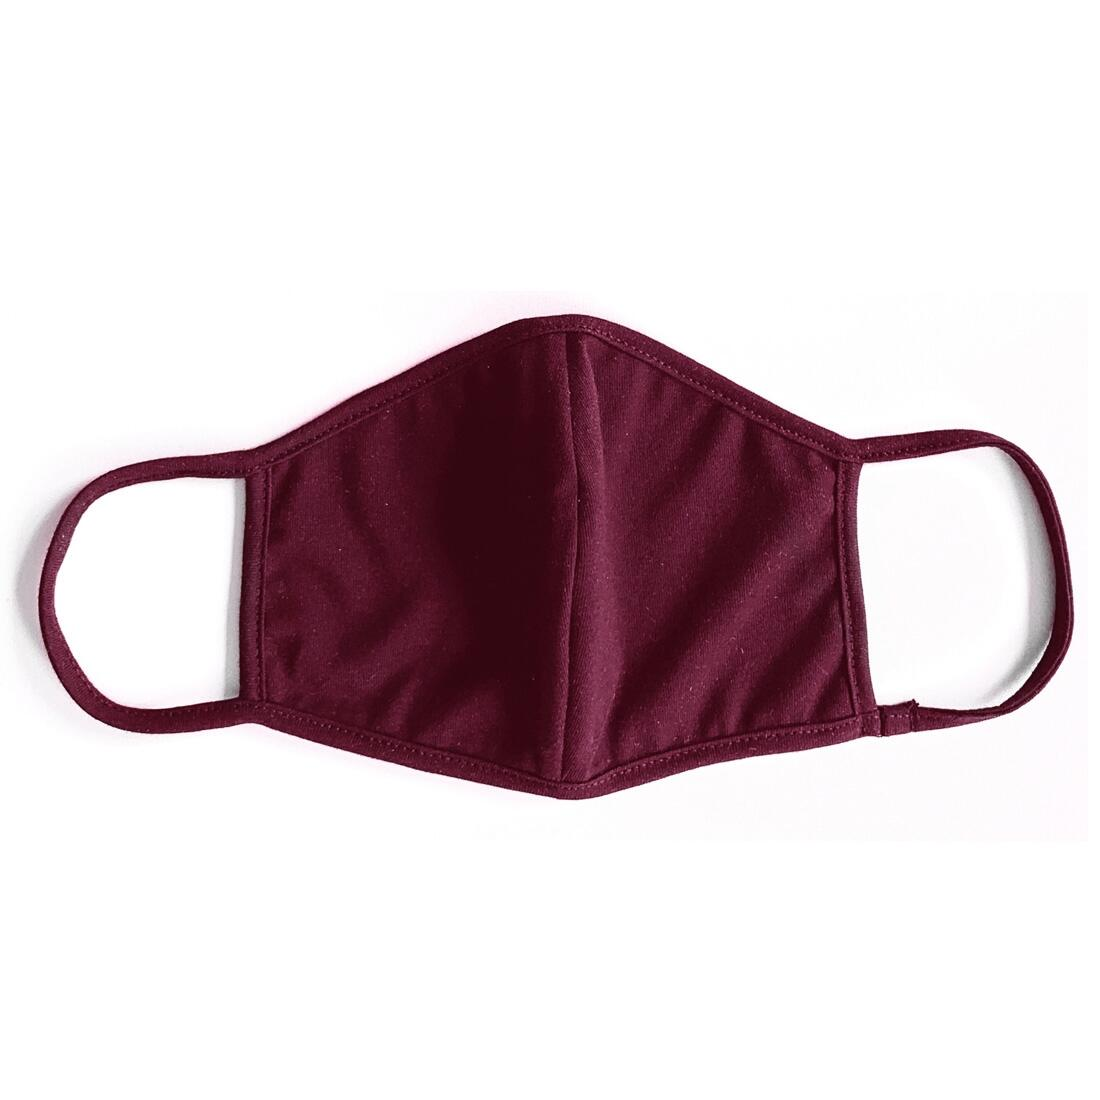 Plain Maroon Face Covering (Mask) with Washable FFP2 Filter